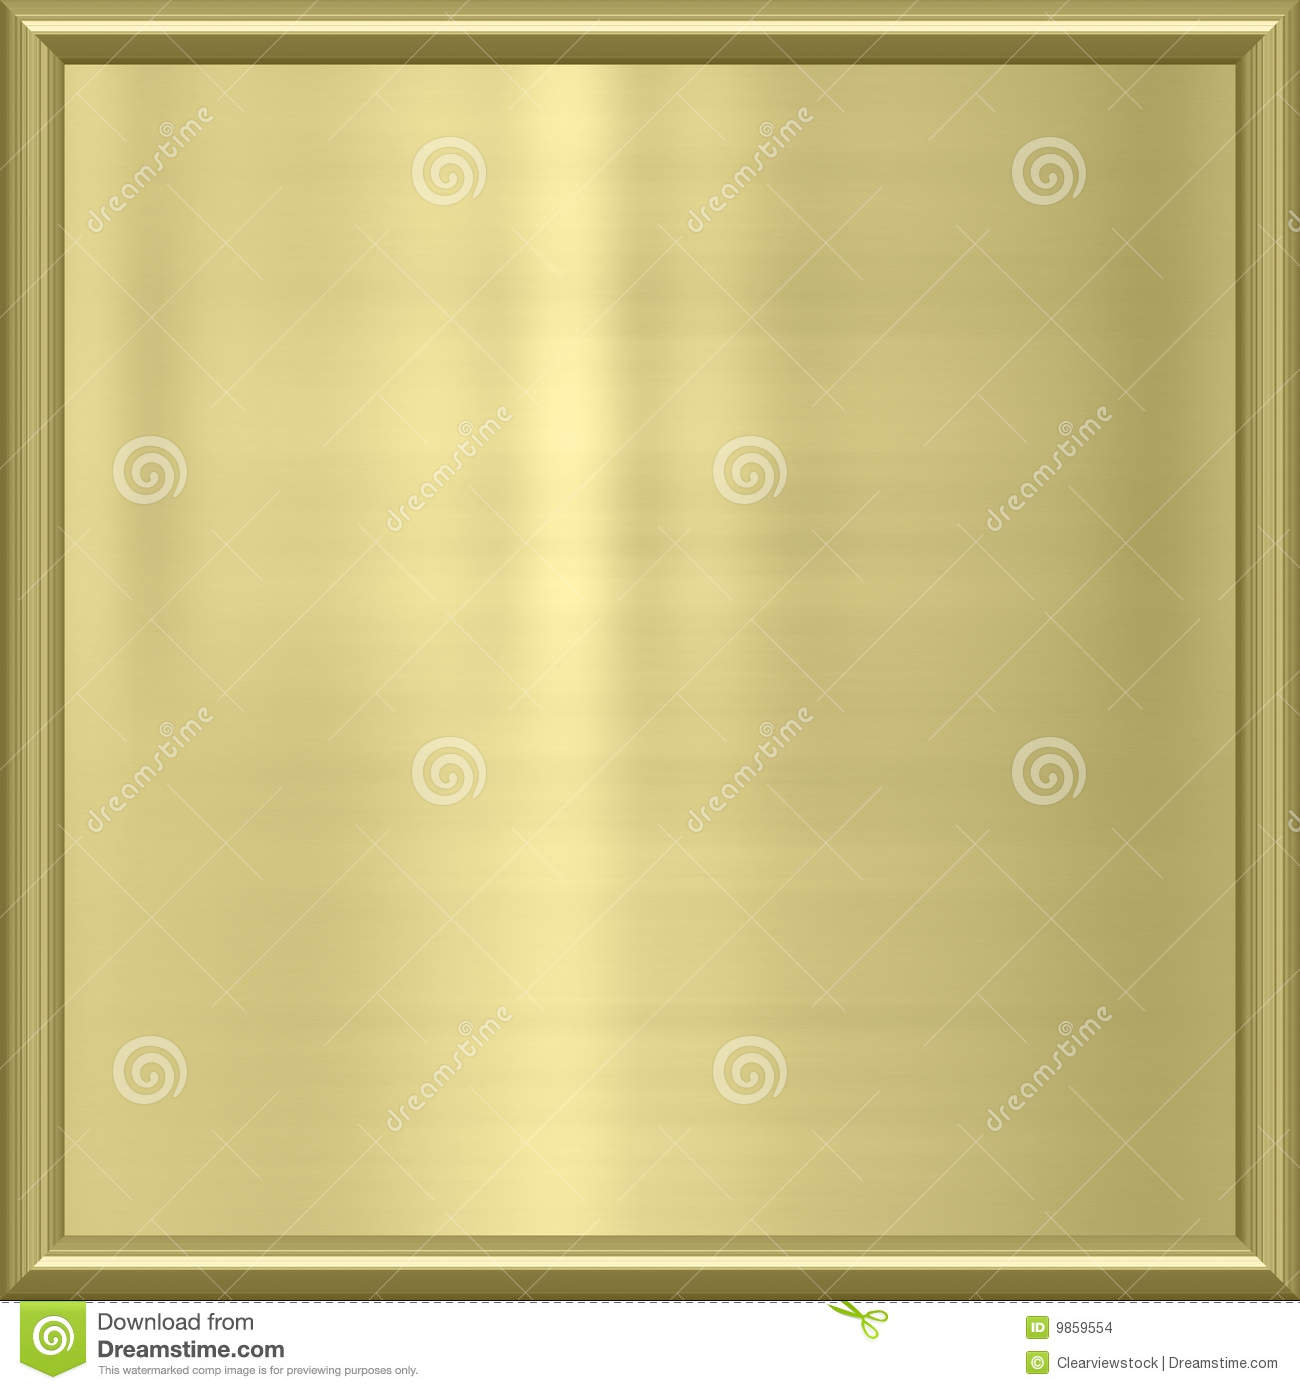 golden metal award frame stock images